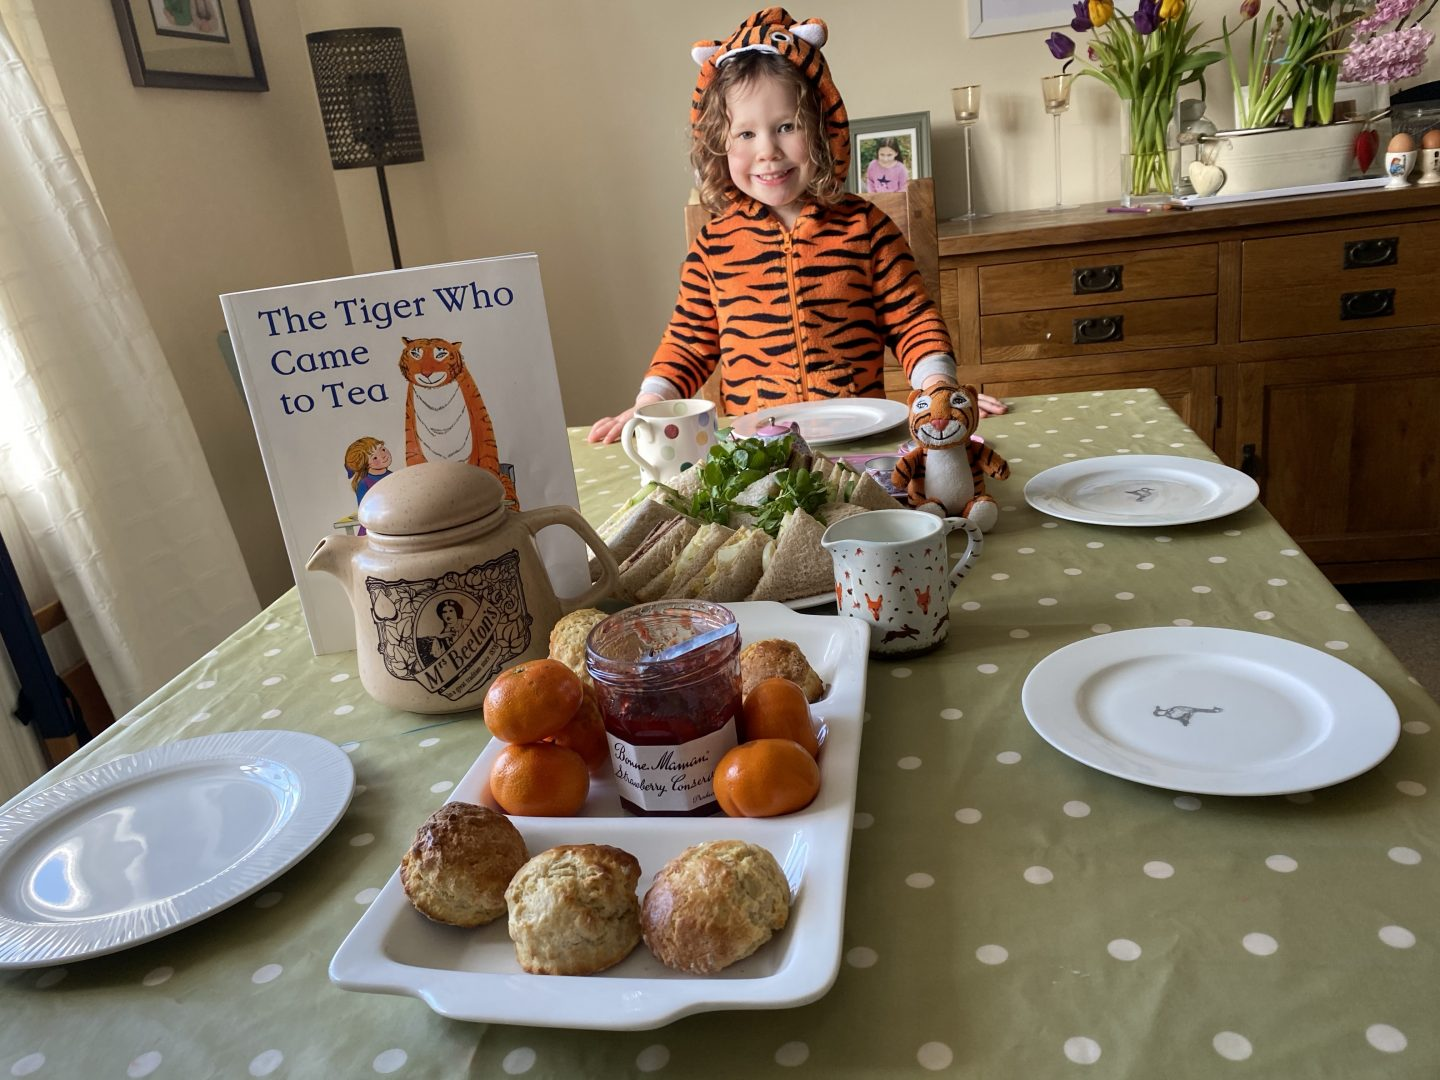 Tiger who came to tea, tea partywith a little girl dressed as a tiger and afternoon tea food